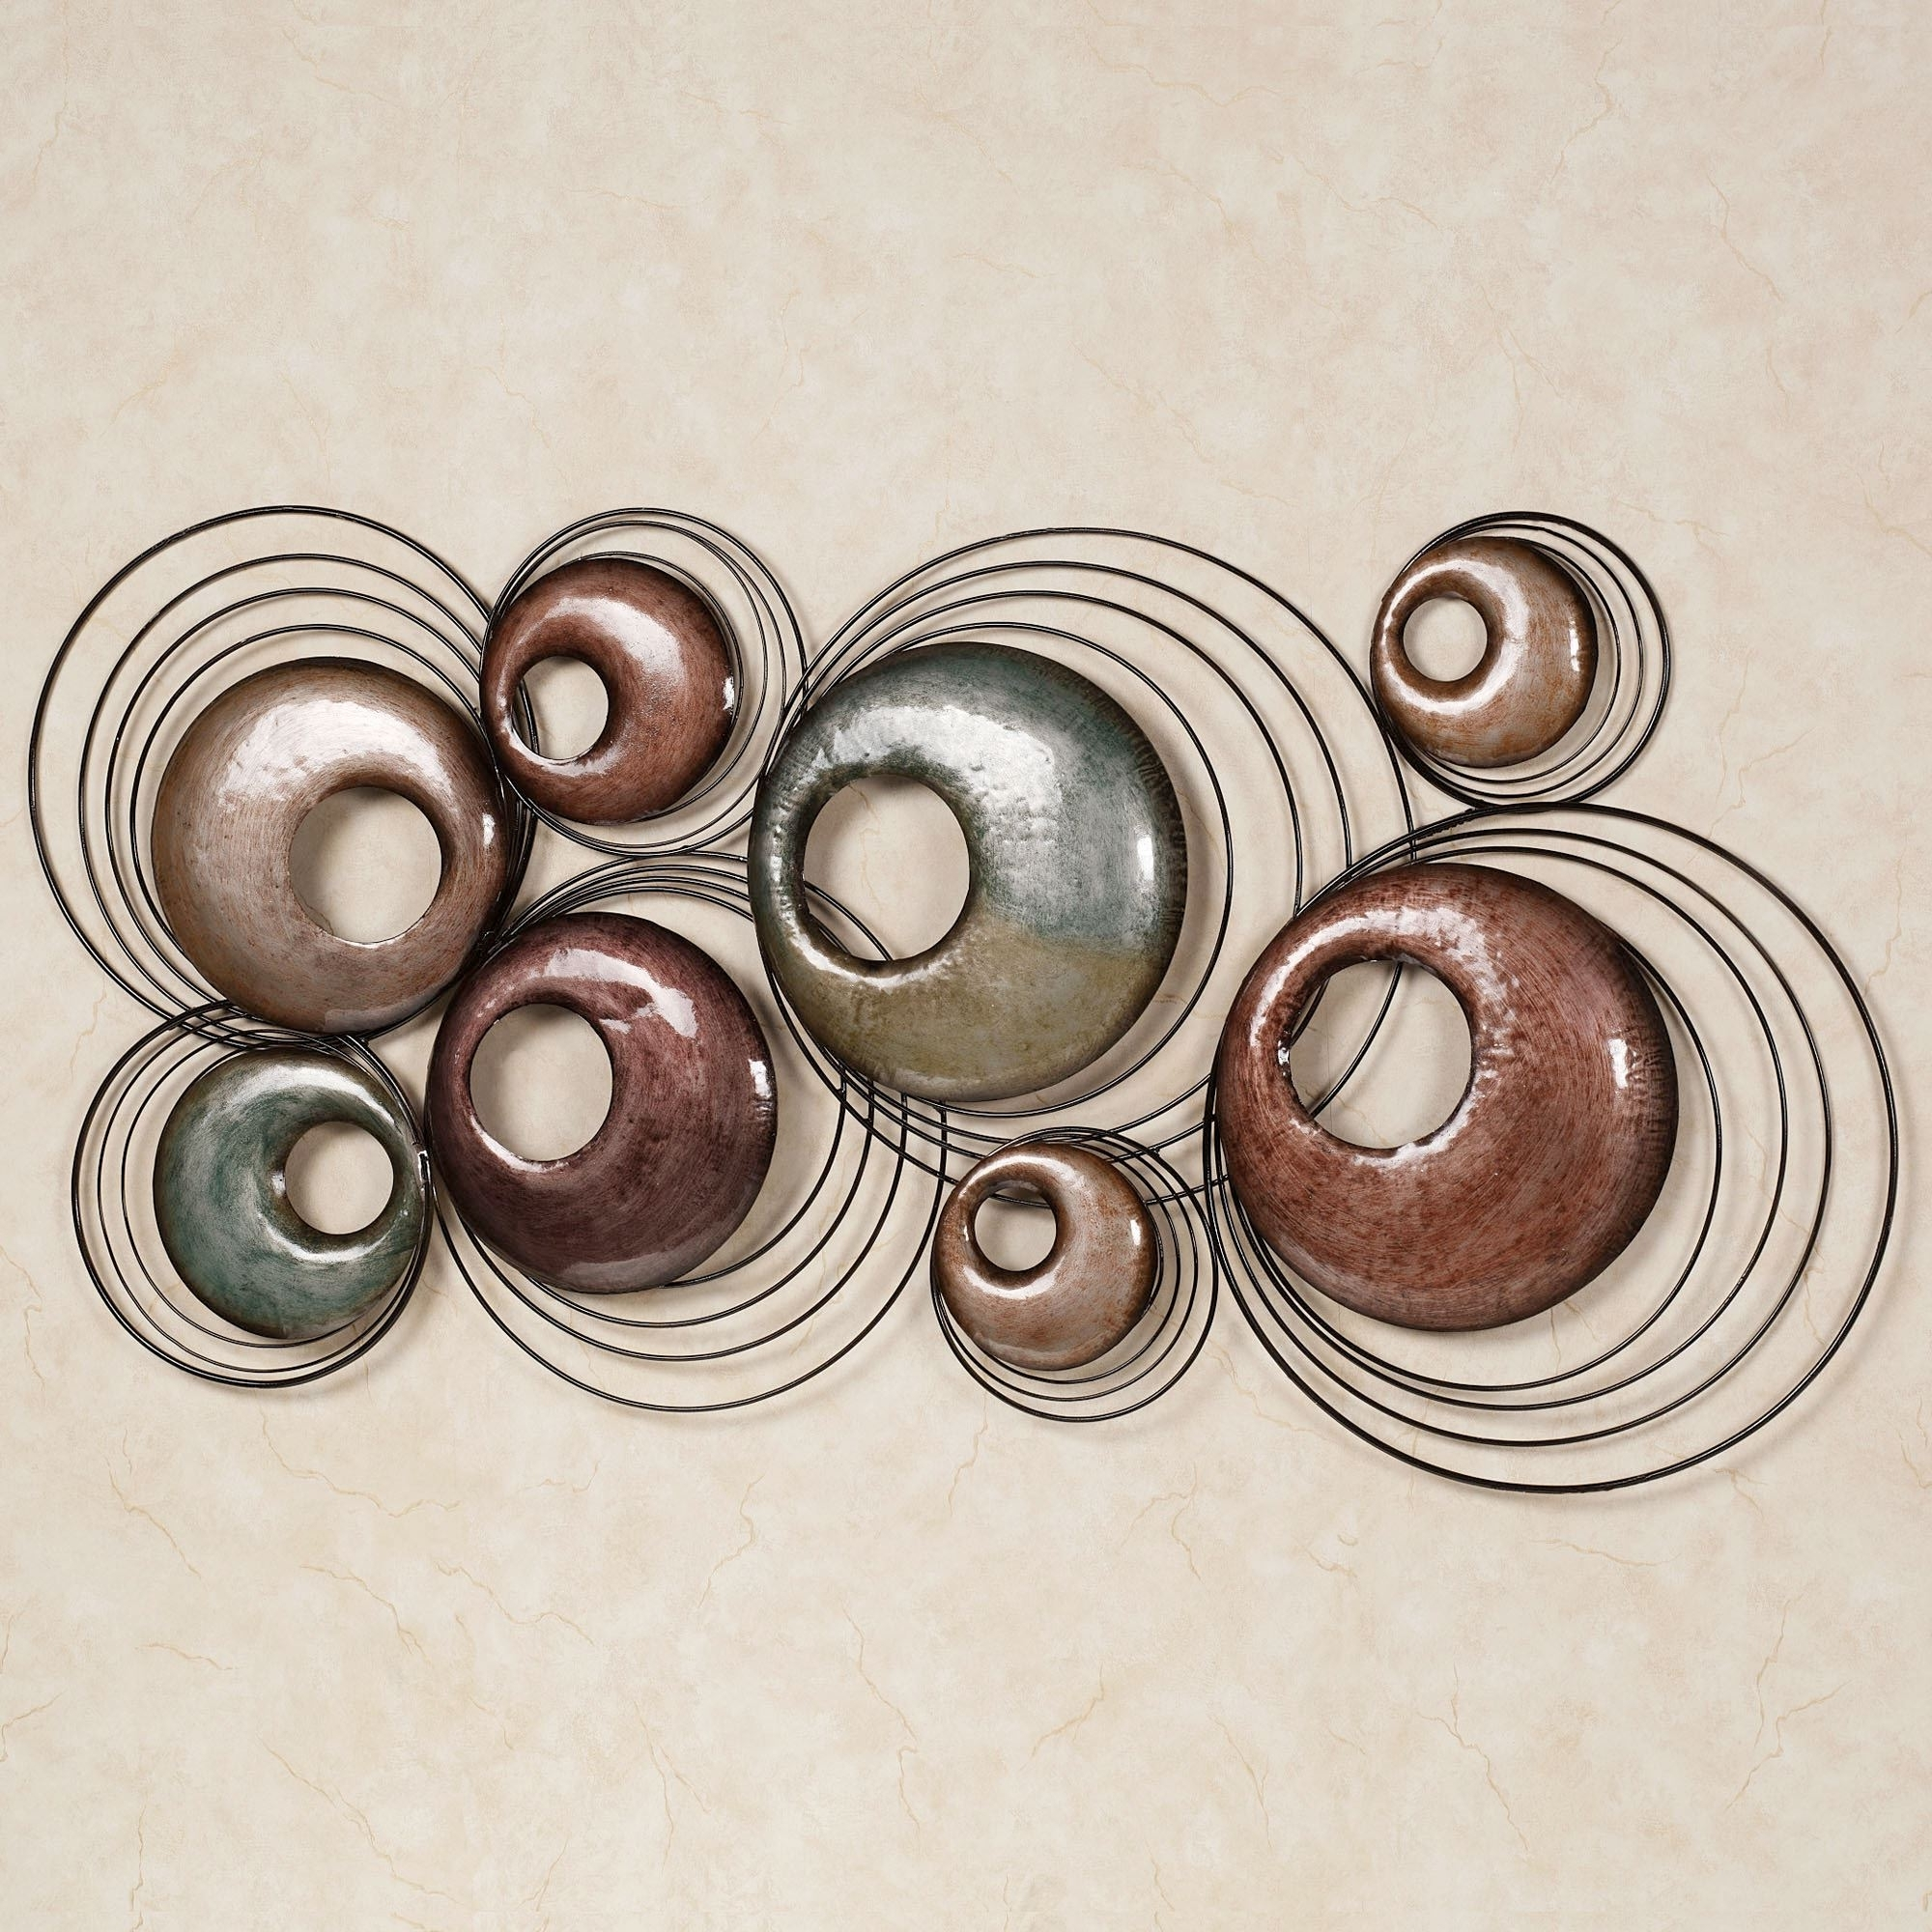 Most Recent Abstract Metal Wall Art Sculptures Pertaining To Echo Metal Wall Sculpture Art (View 15 of 15)